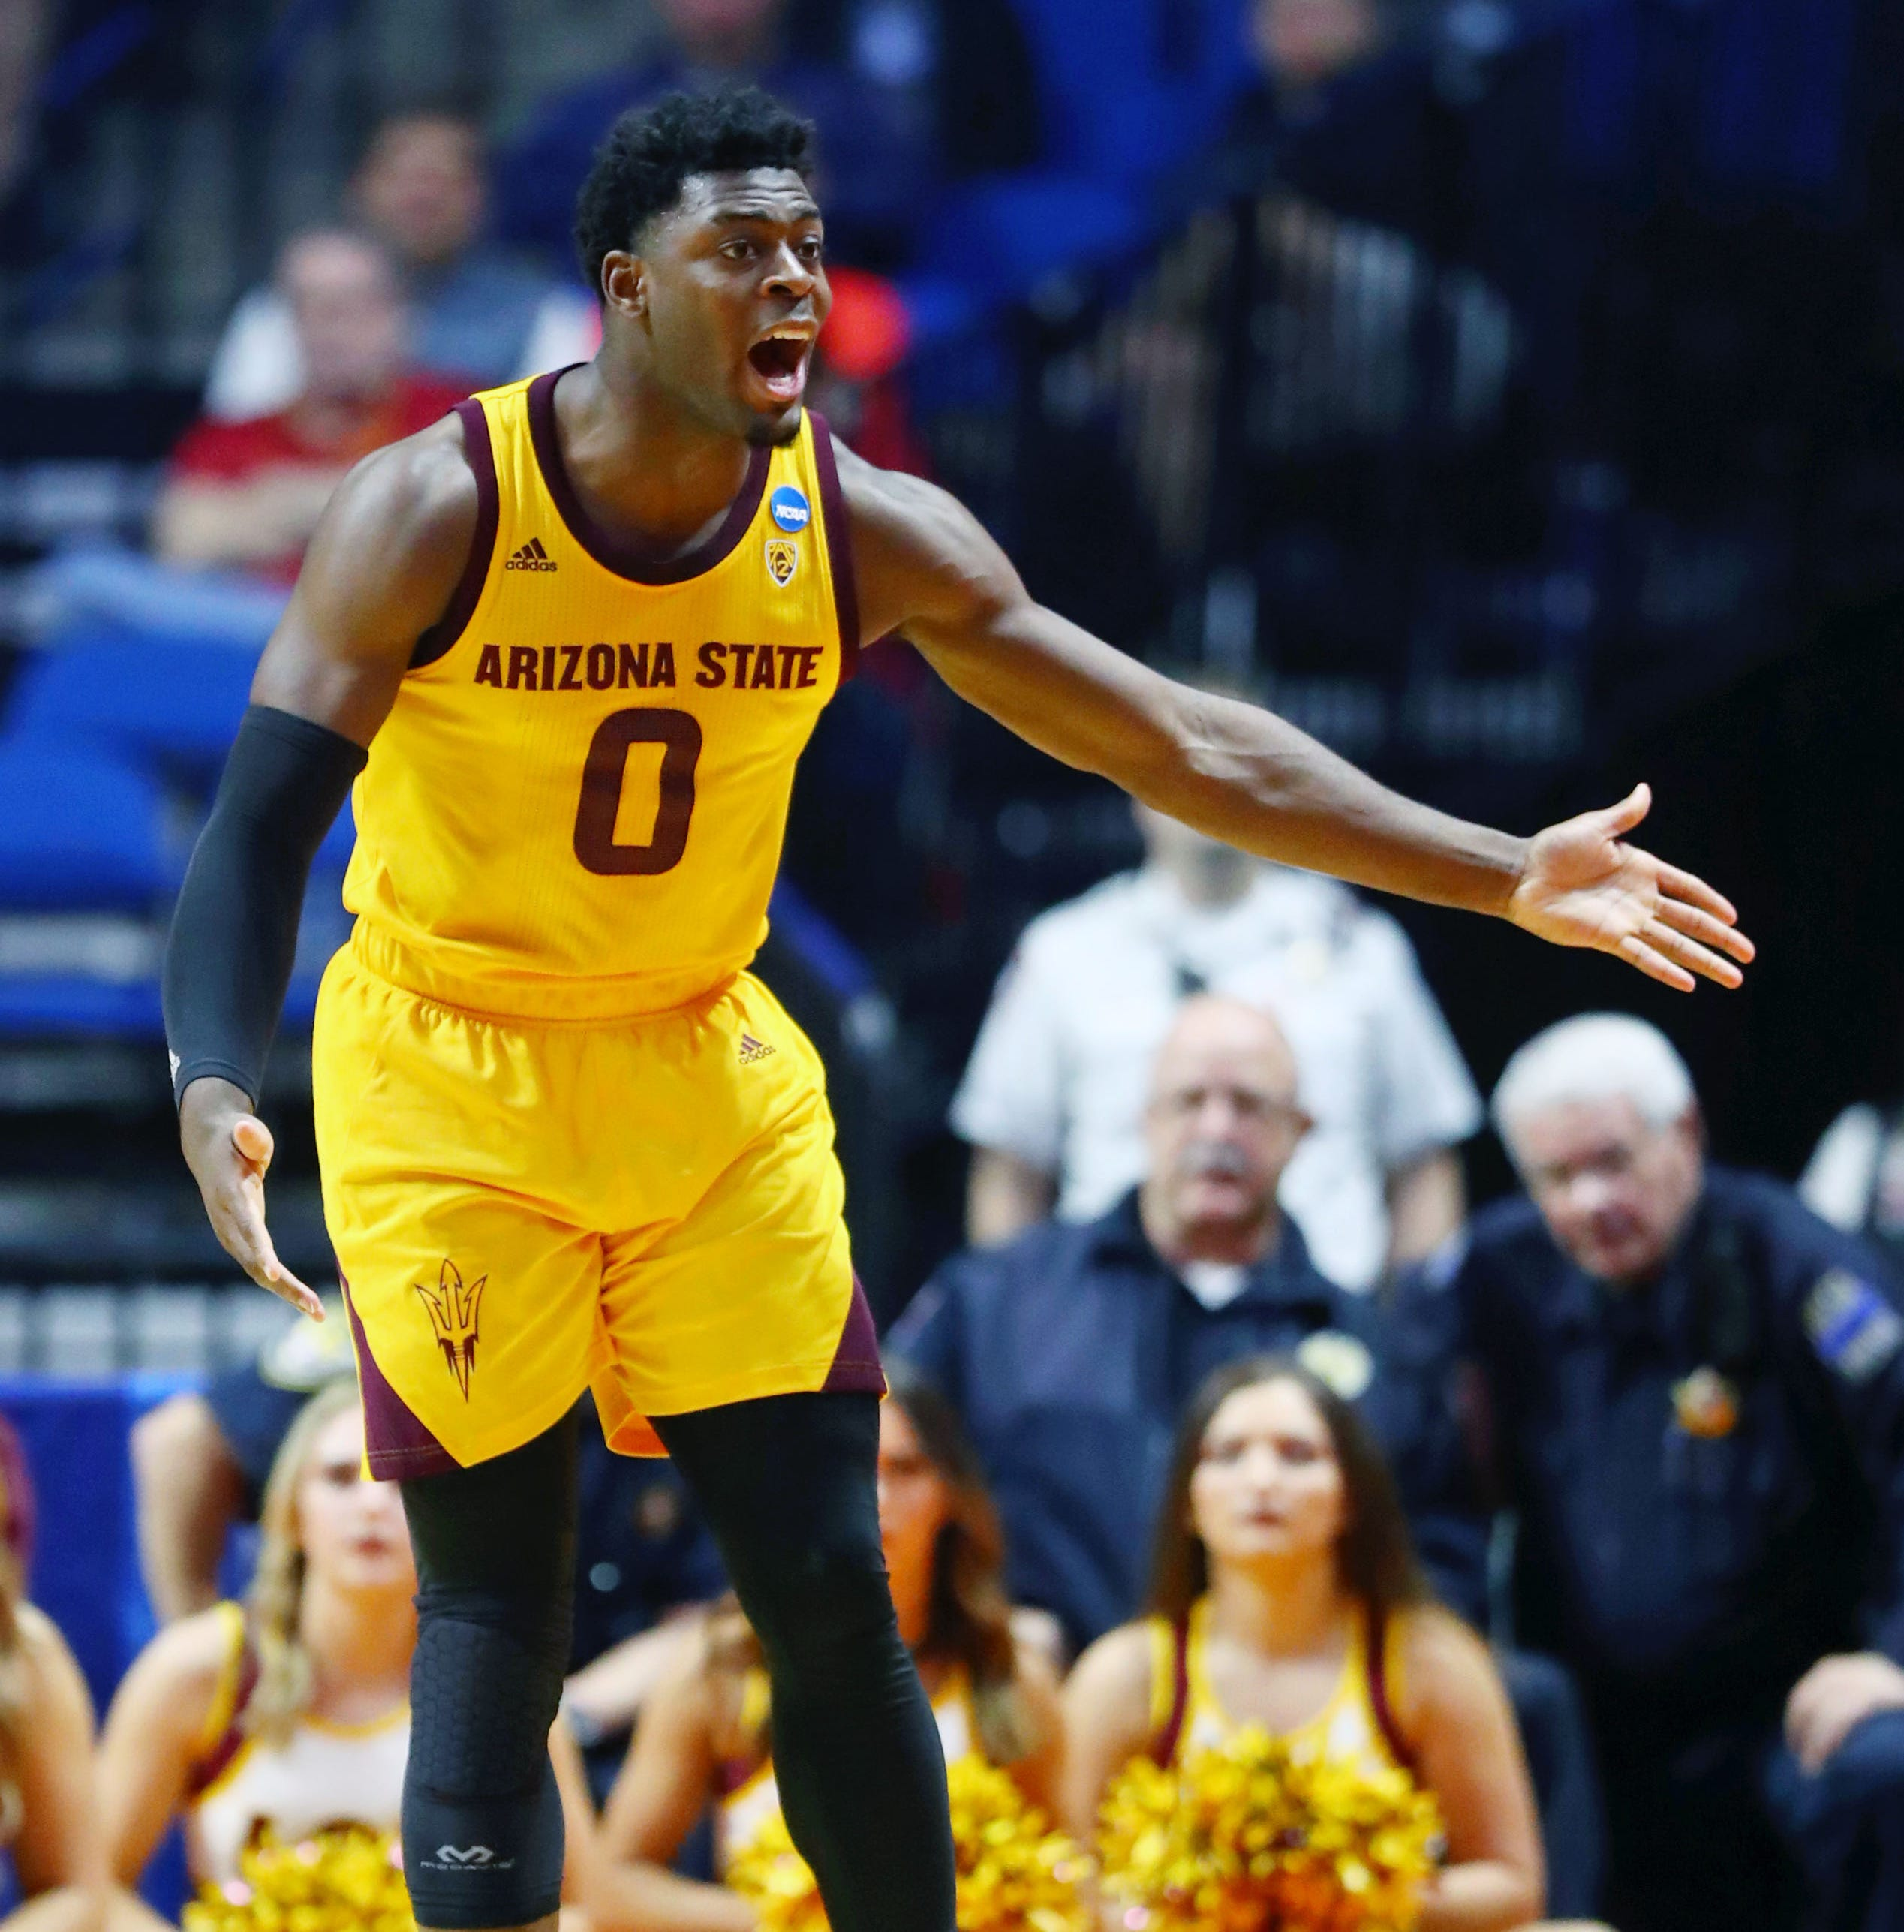 NBA mock draft: Where will Luguentz Dort be picked in 2019 NBA draft, should he leave ASU?